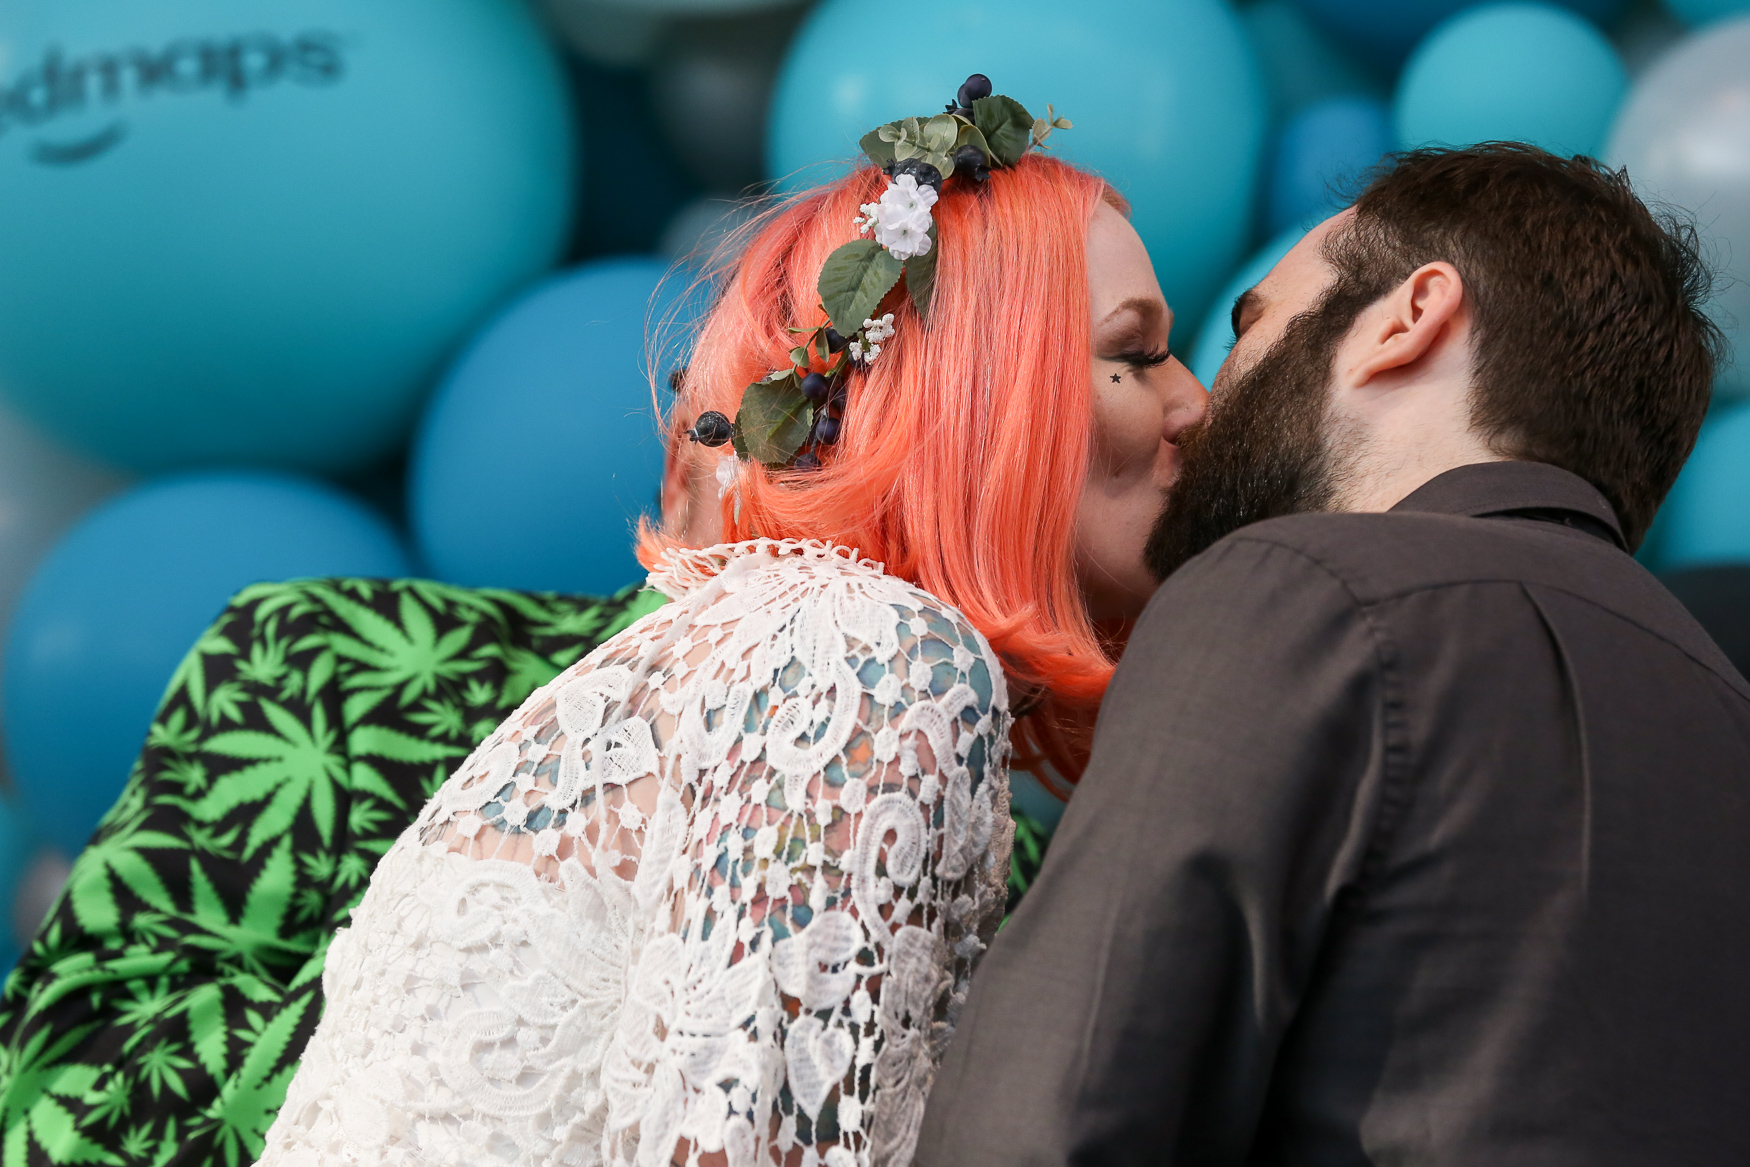 The festivities also included the ultimate weed wedding. The lucky couple was selected after a nationwide search and they got married on stage. (Amanda Andrade-Rhoades/DC Refined)